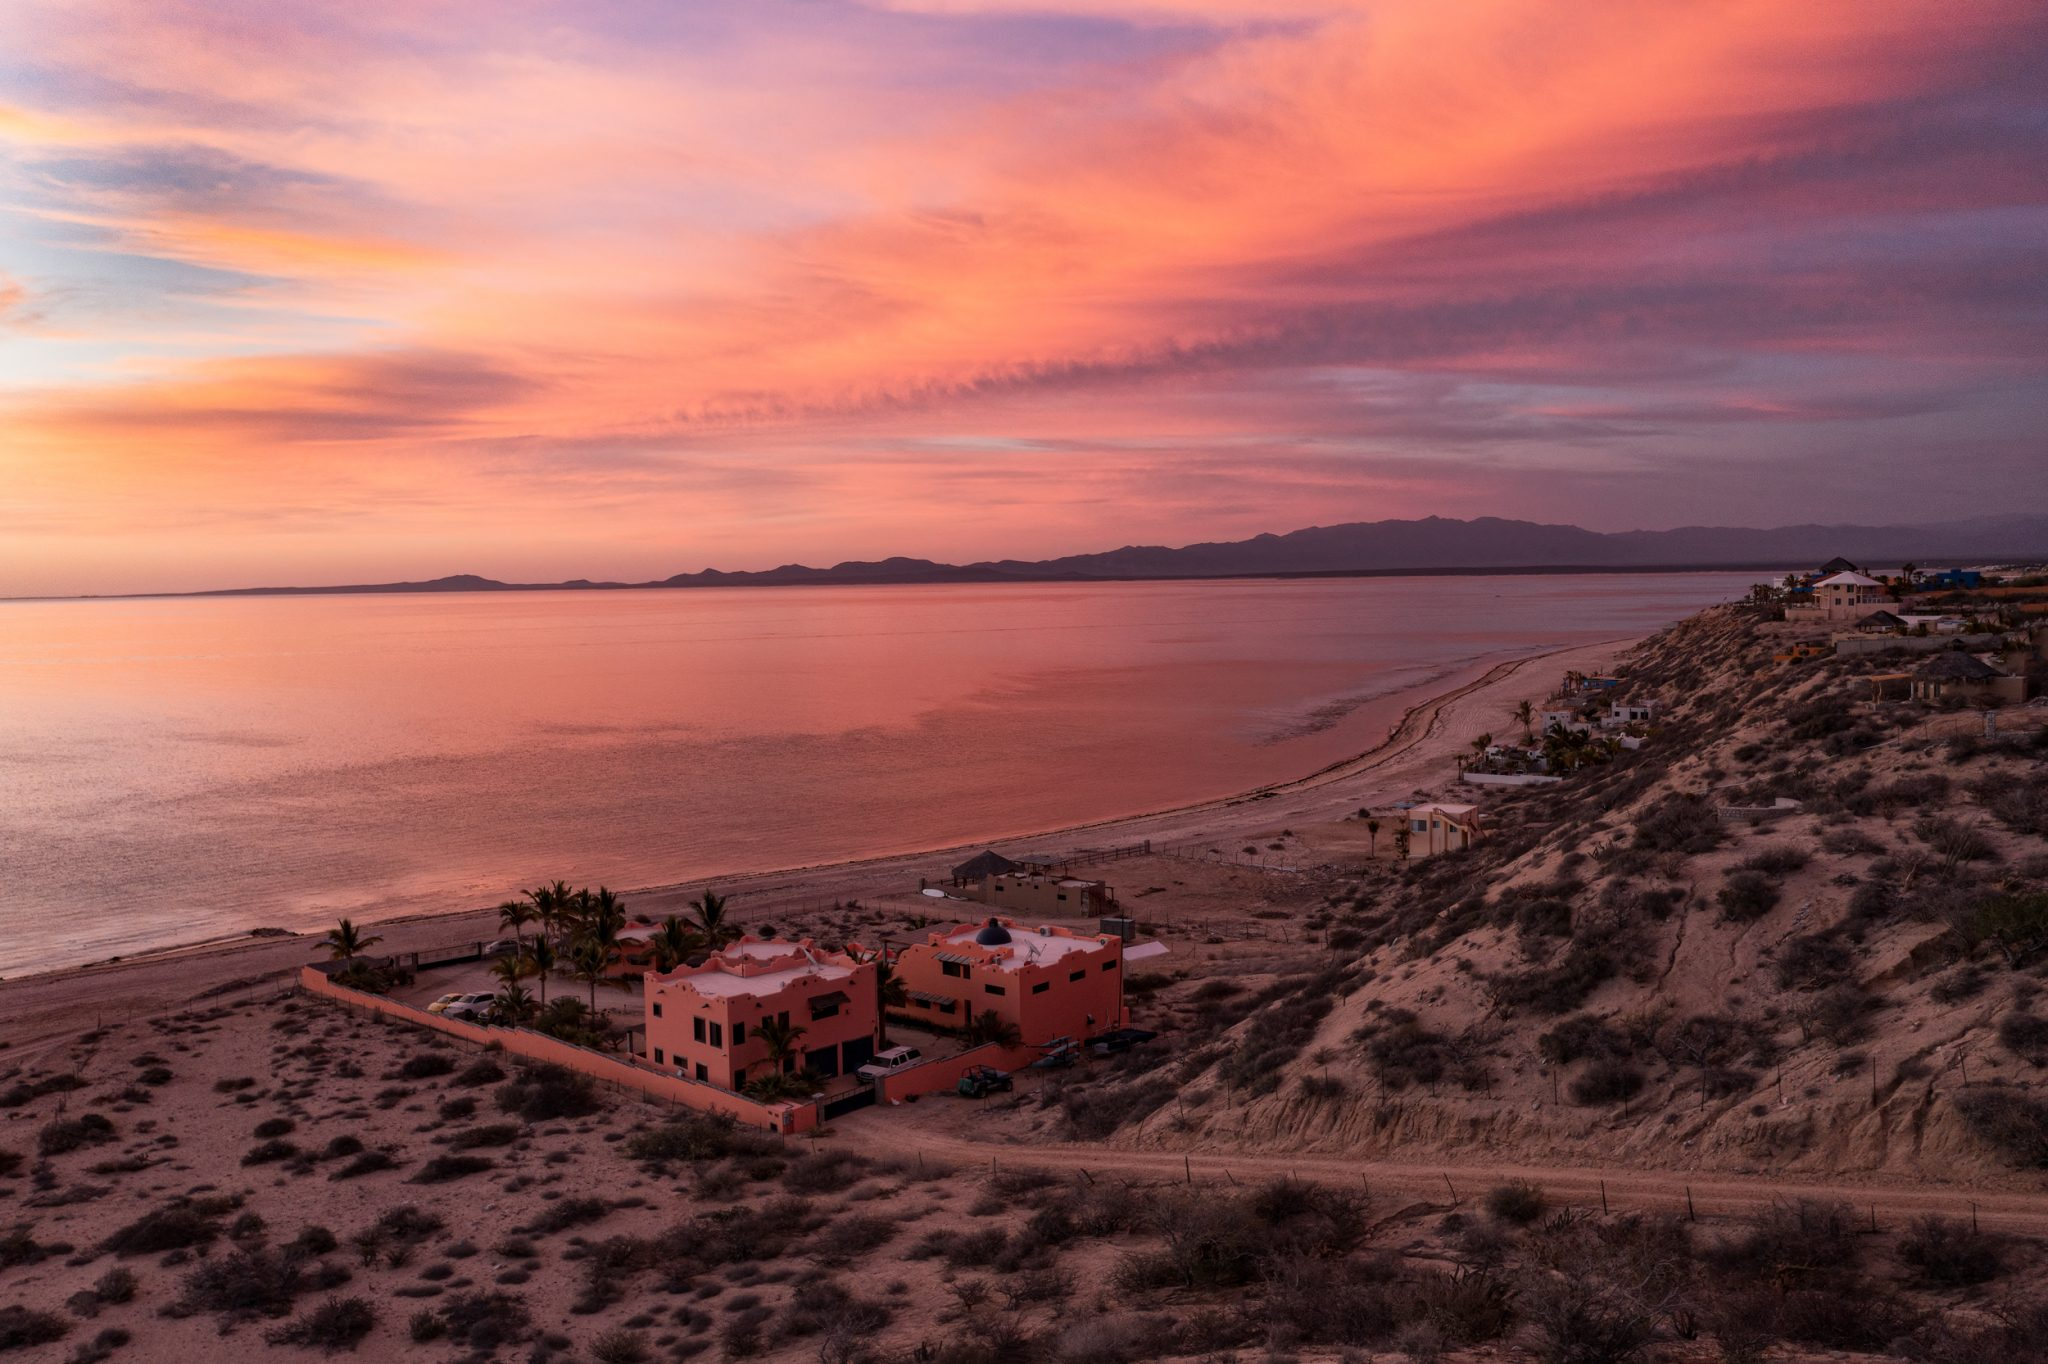 Above & Below photography workshops in Baja California Sur Mexico